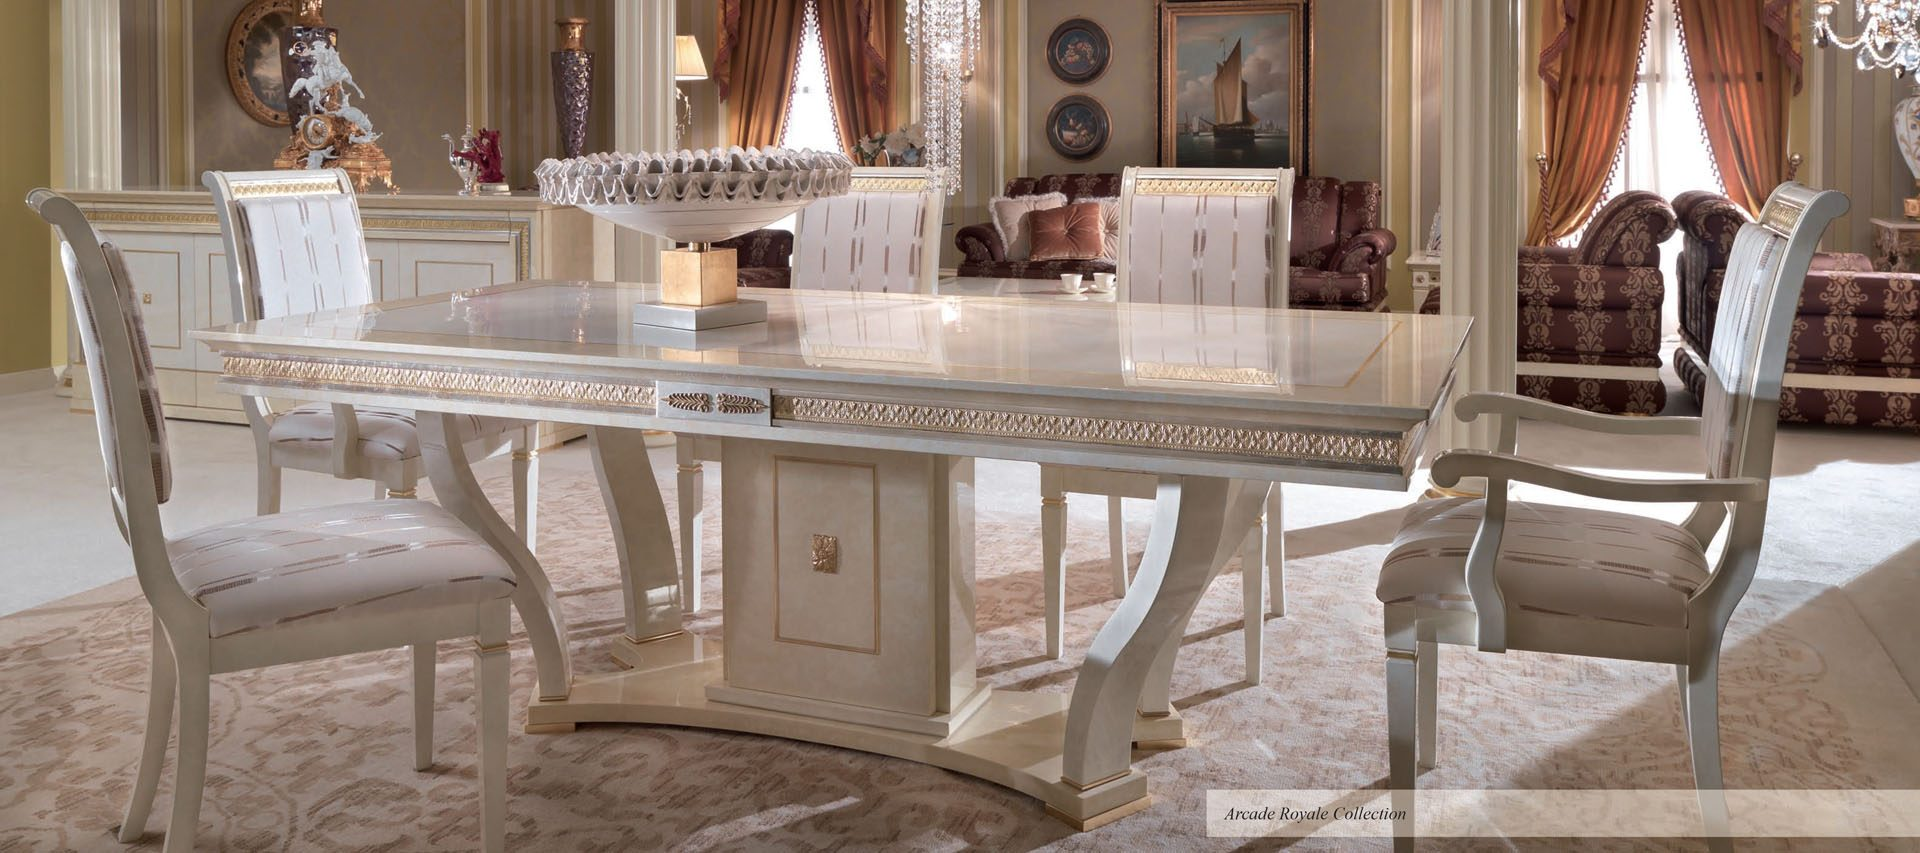 Arcade Royale Dining Table